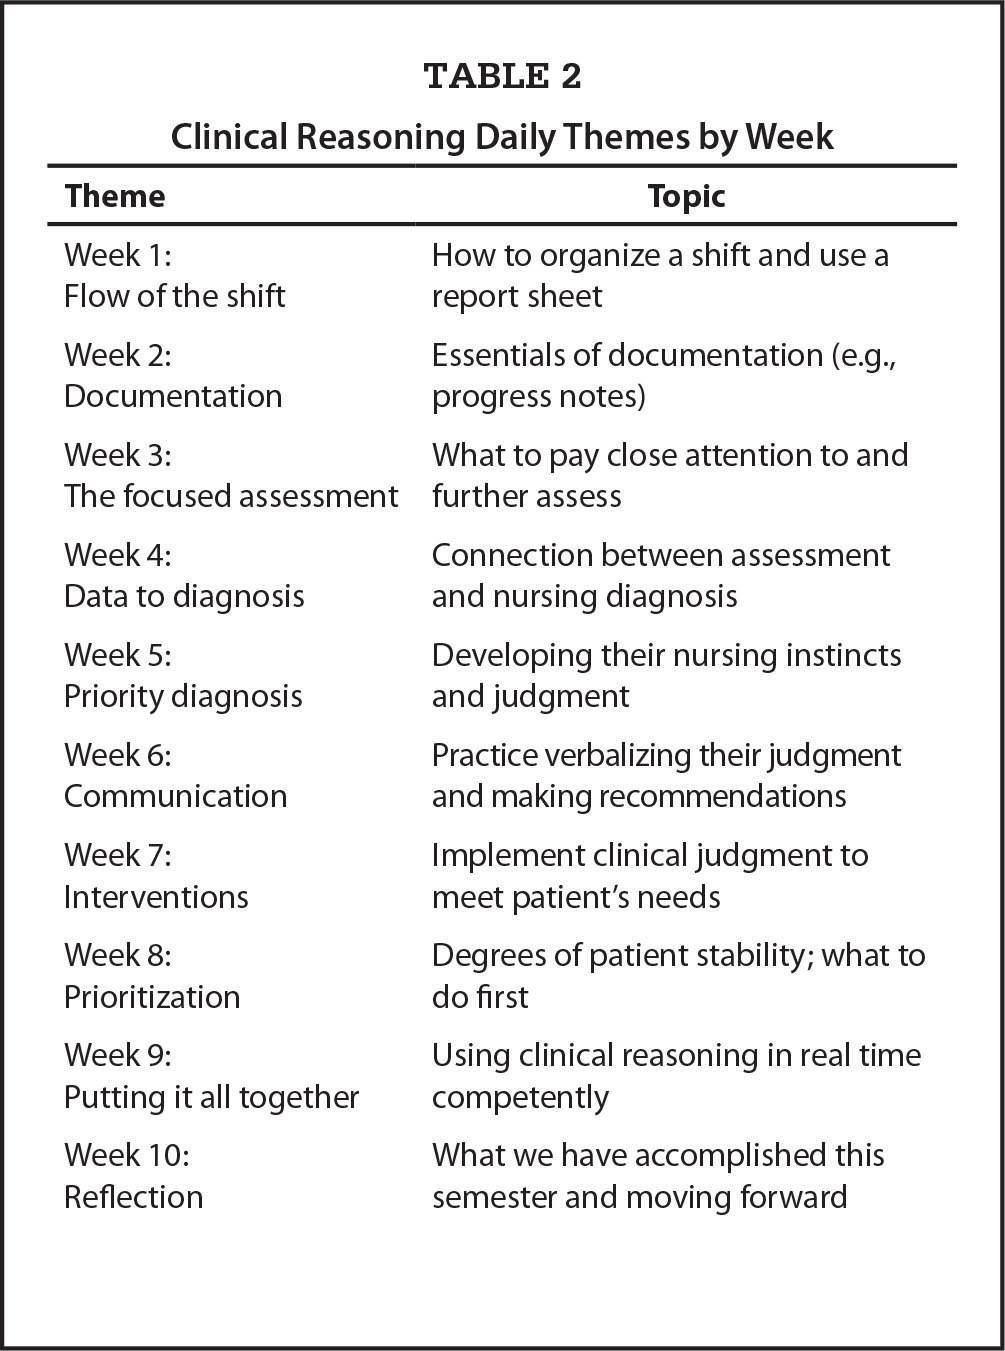 Clinical Reasoning Daily Themes by Week